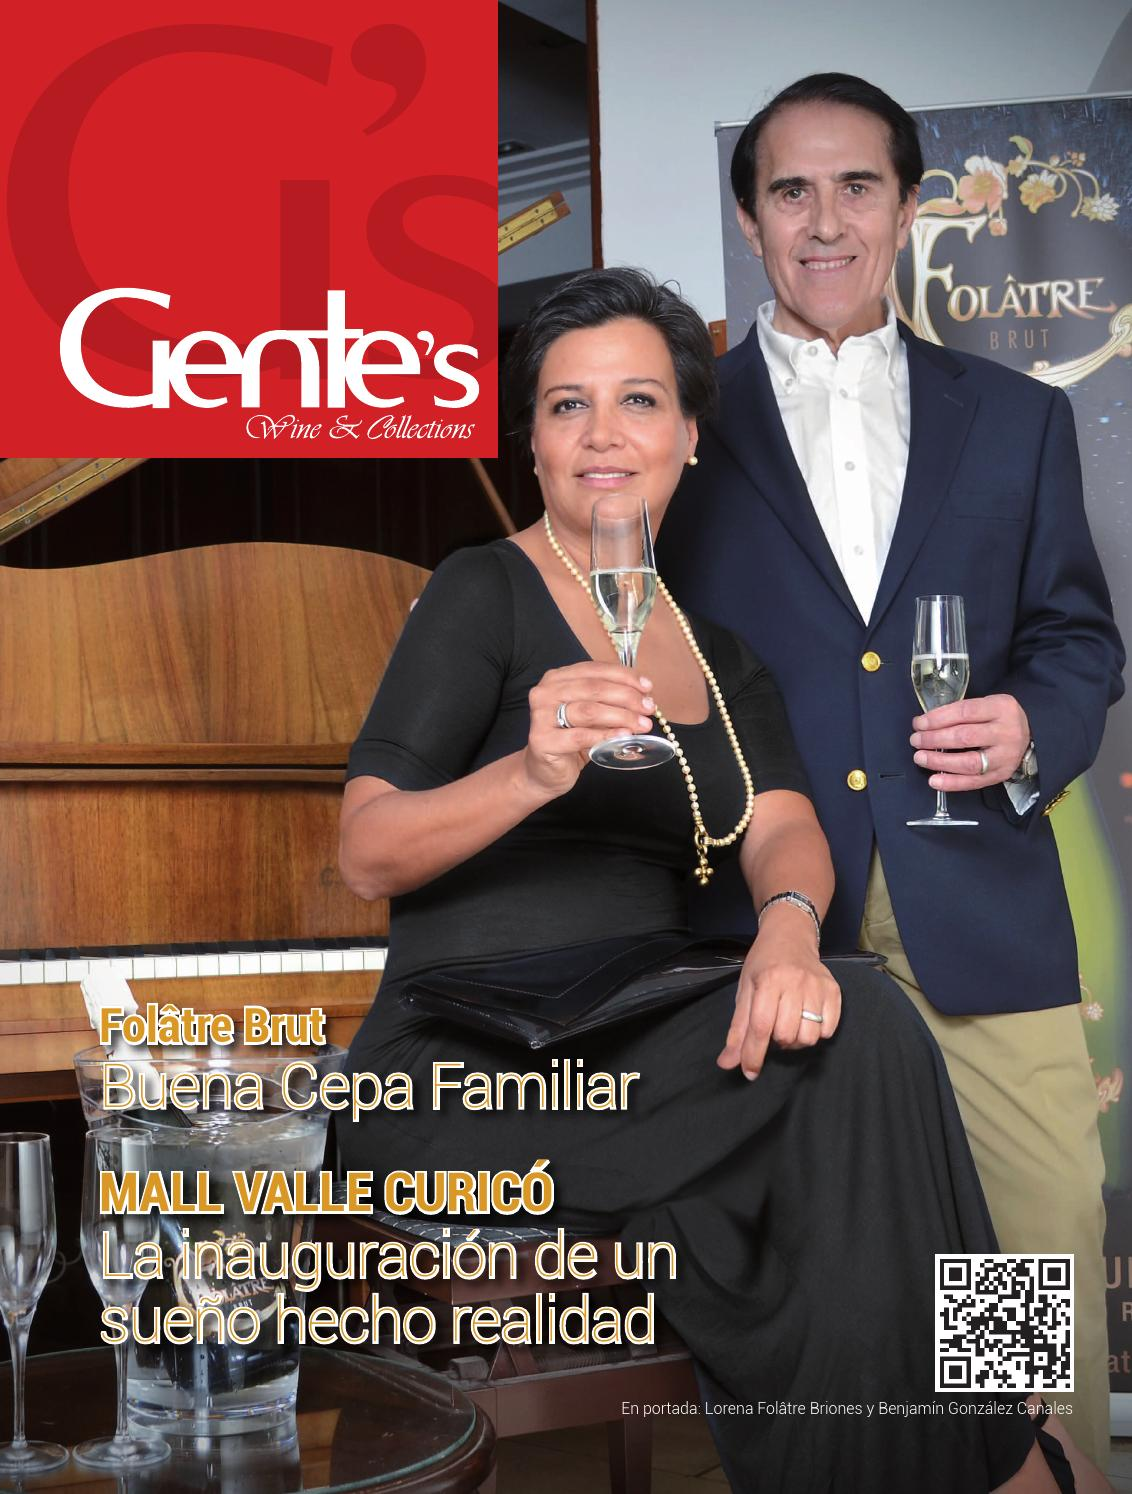 Gente 39 s 75 by grafica revista gentes issuu for Viveros en curico